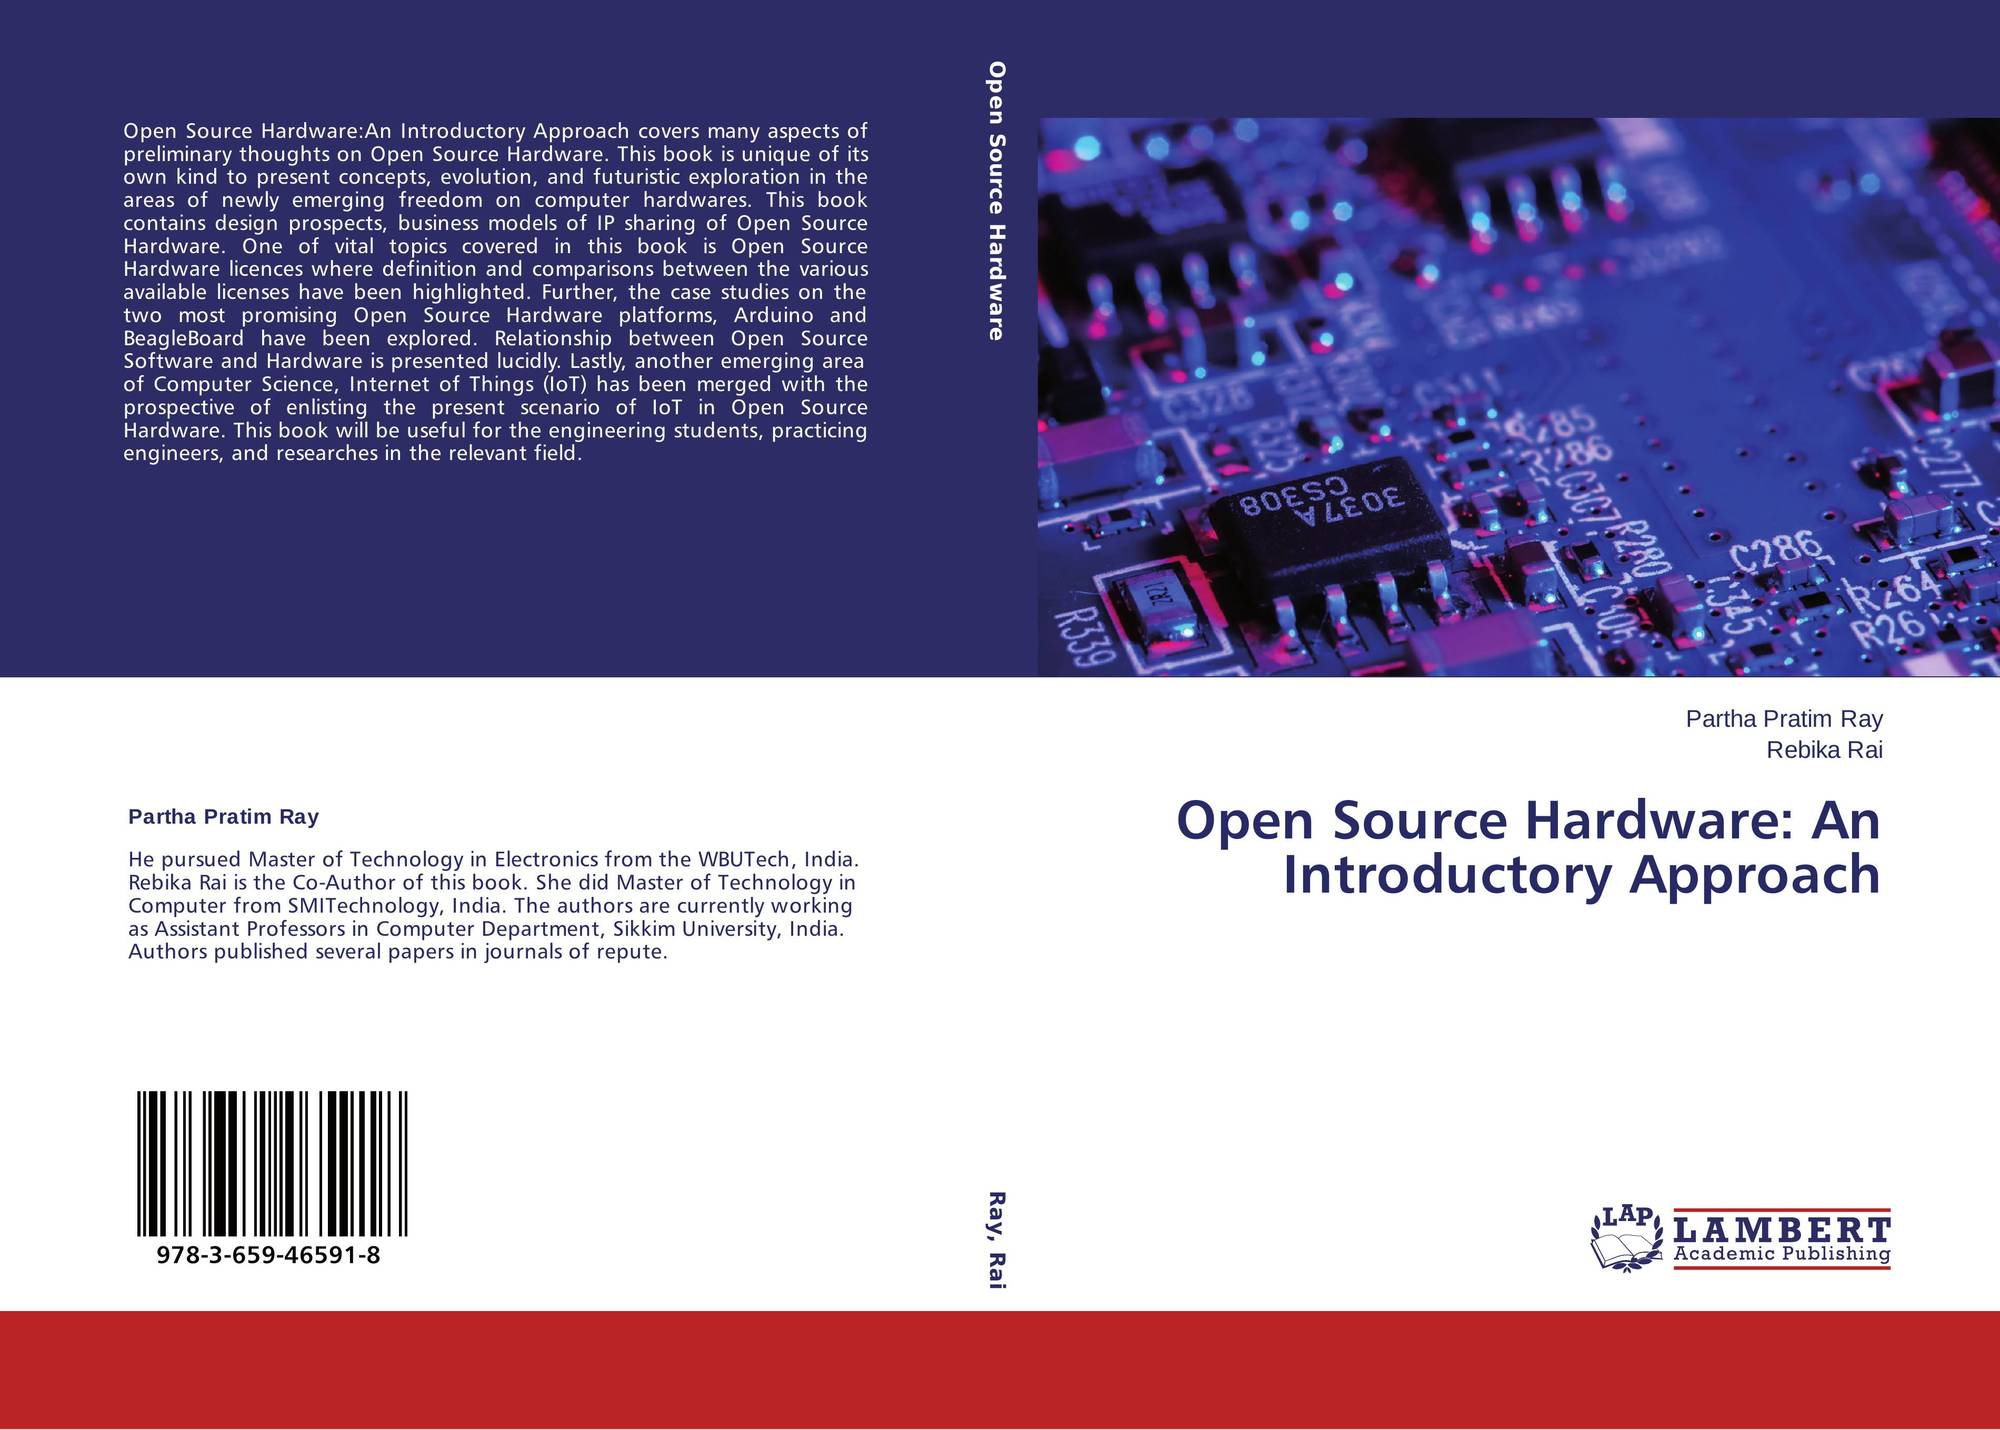 Open Source Hardware: An Introductory Approach